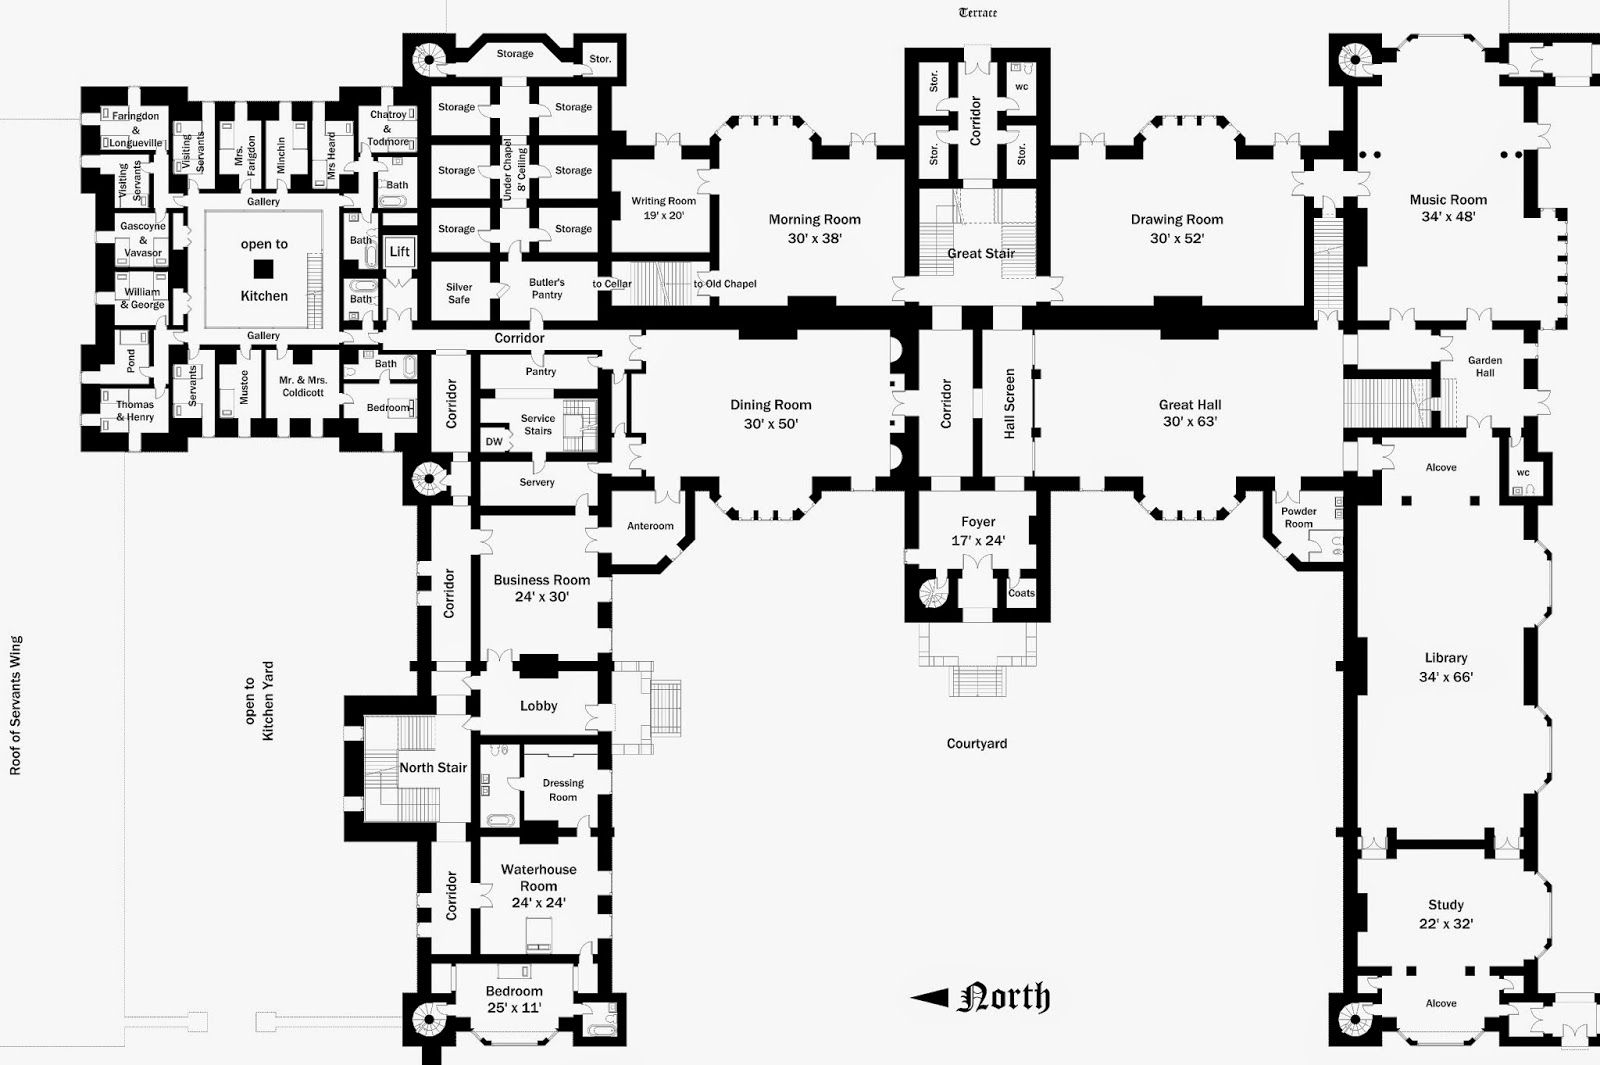 Blandford Homes Floor Plans: Pin By Alissa Austin On Foxbridge Castle